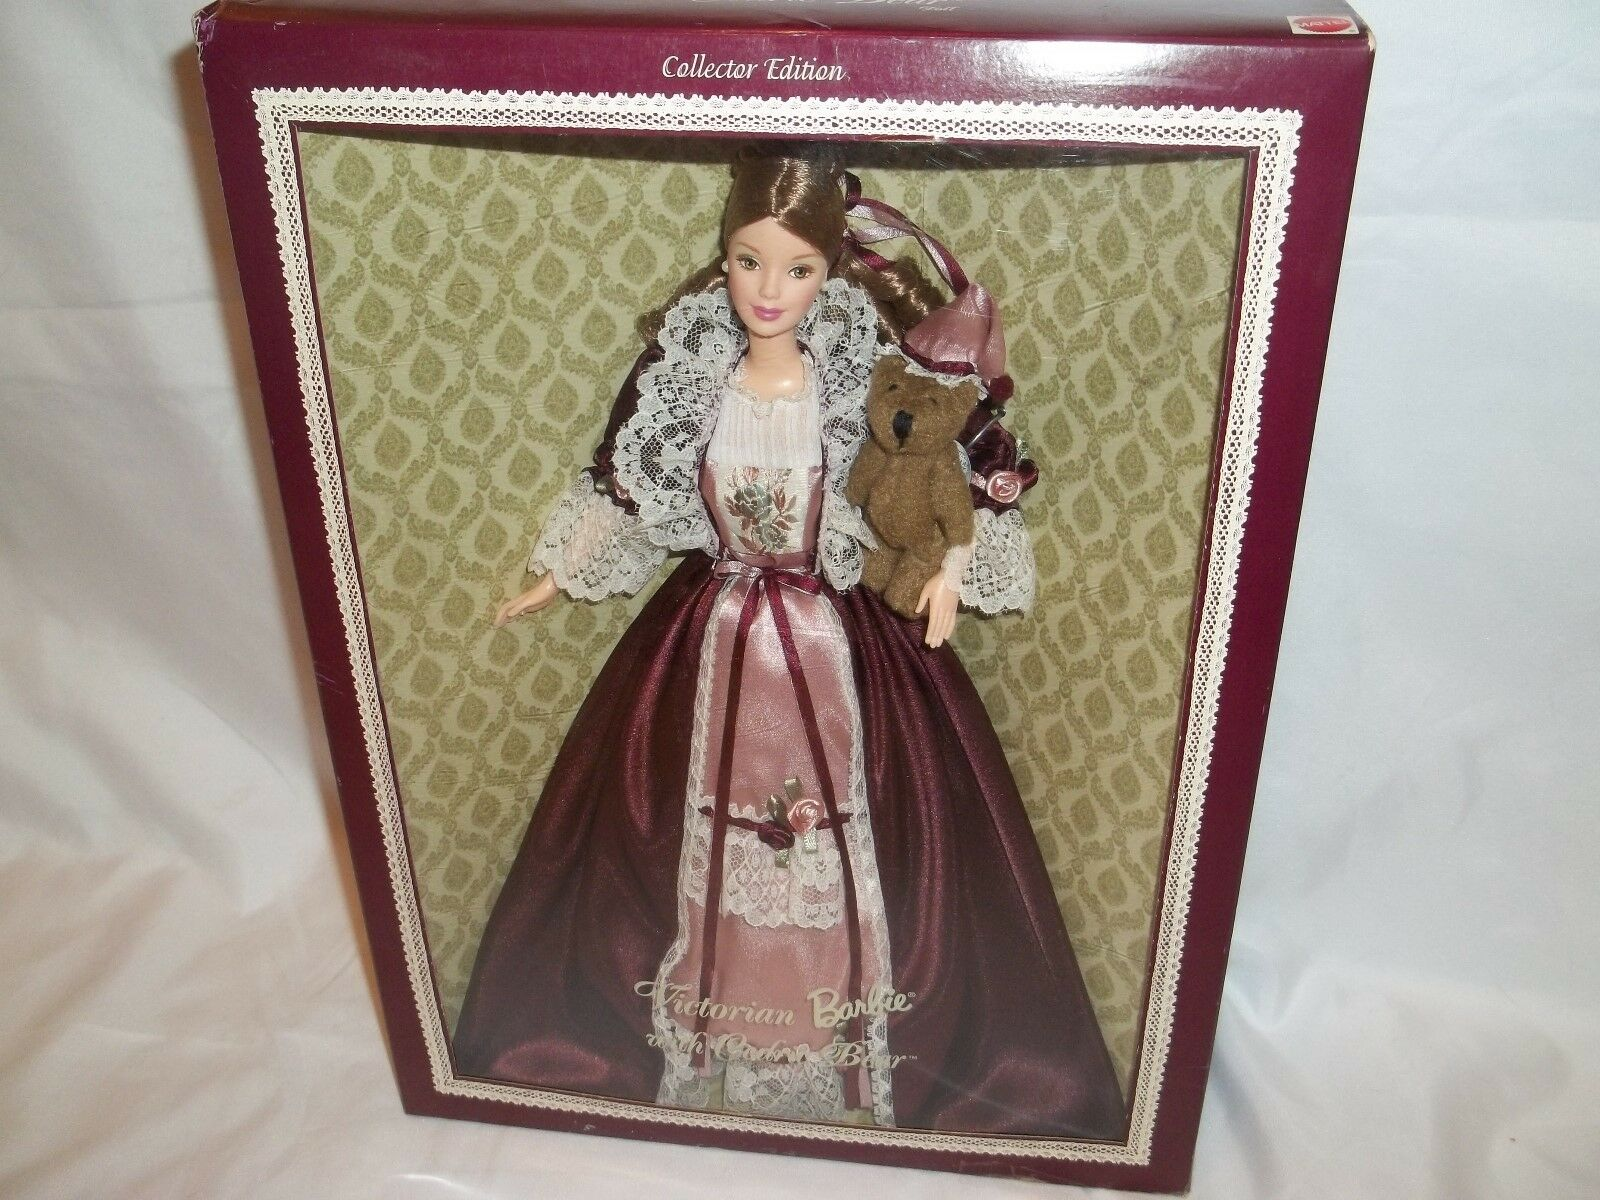 1999 Victorian Barbie With With With Cedric Bear. Collector Edition. f7941f